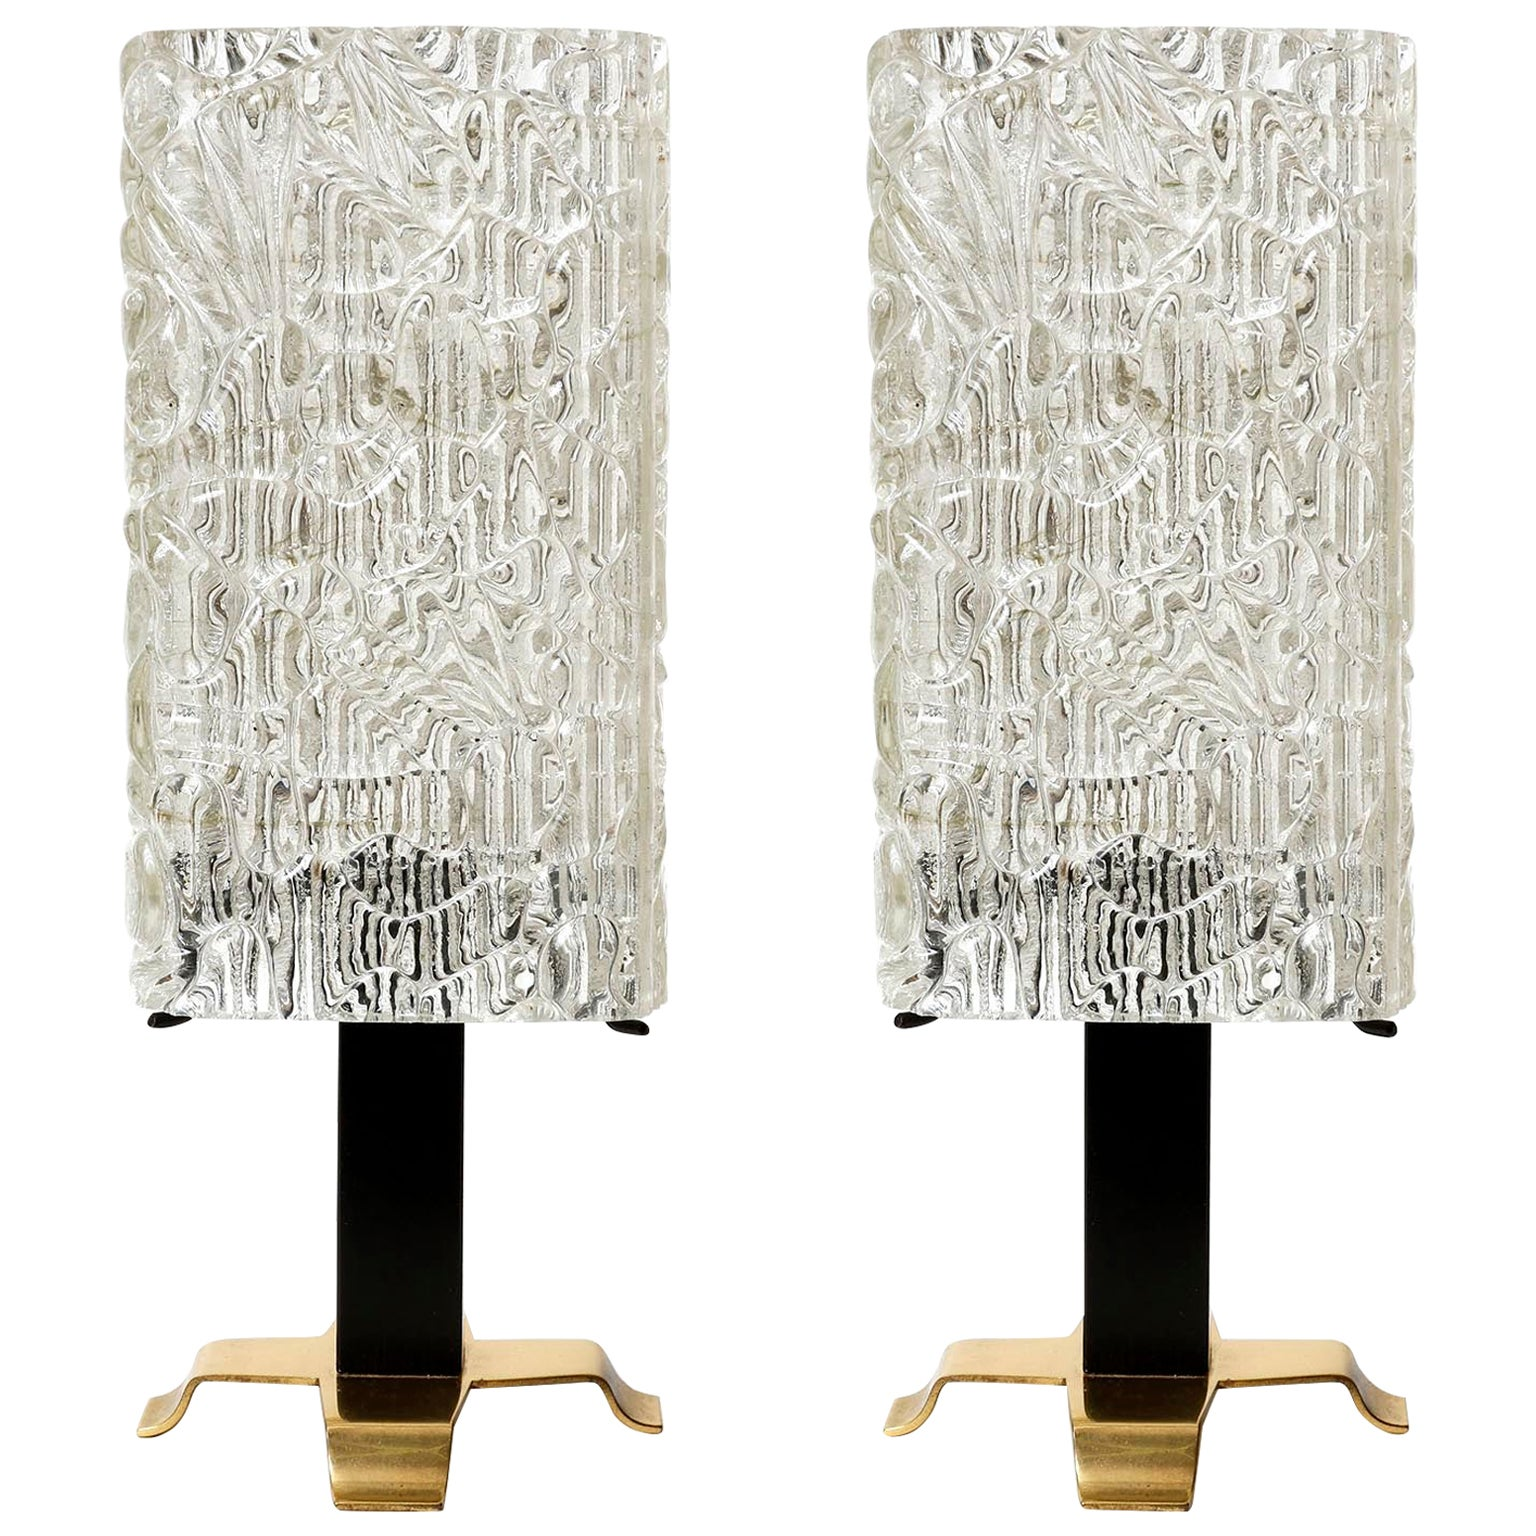 Pair of Kalmar Table Lamps, Brass Glass, 1950s